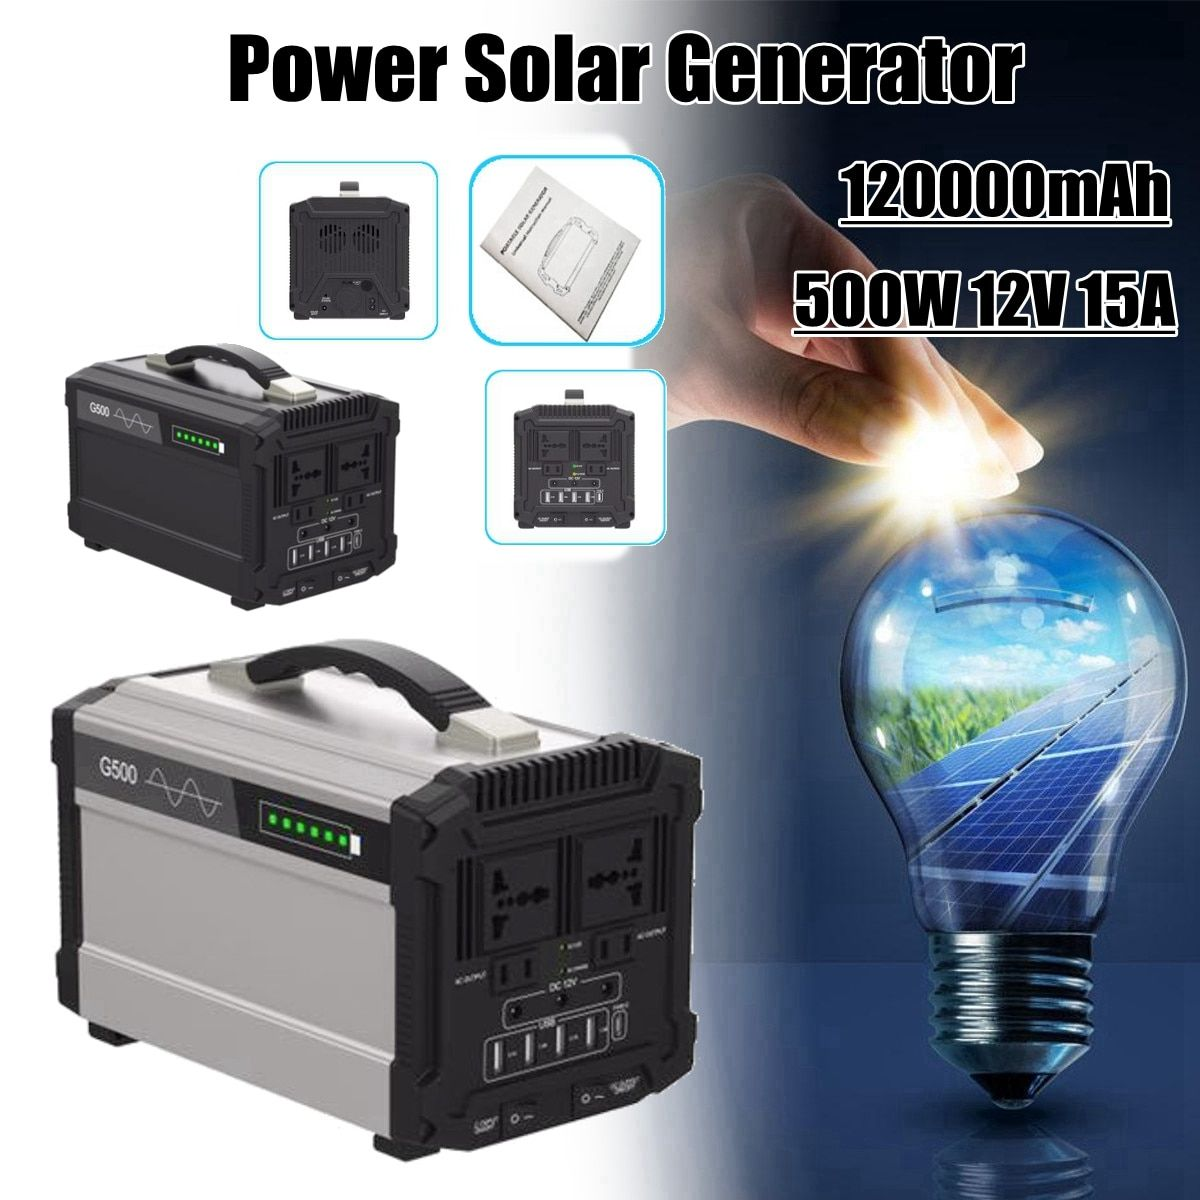 110V/220V 444Wh 120000mAh 500W 12V 15A Inverter Energy Power Storage Home Outdoor Portable Power Solar Generator Faster Charge